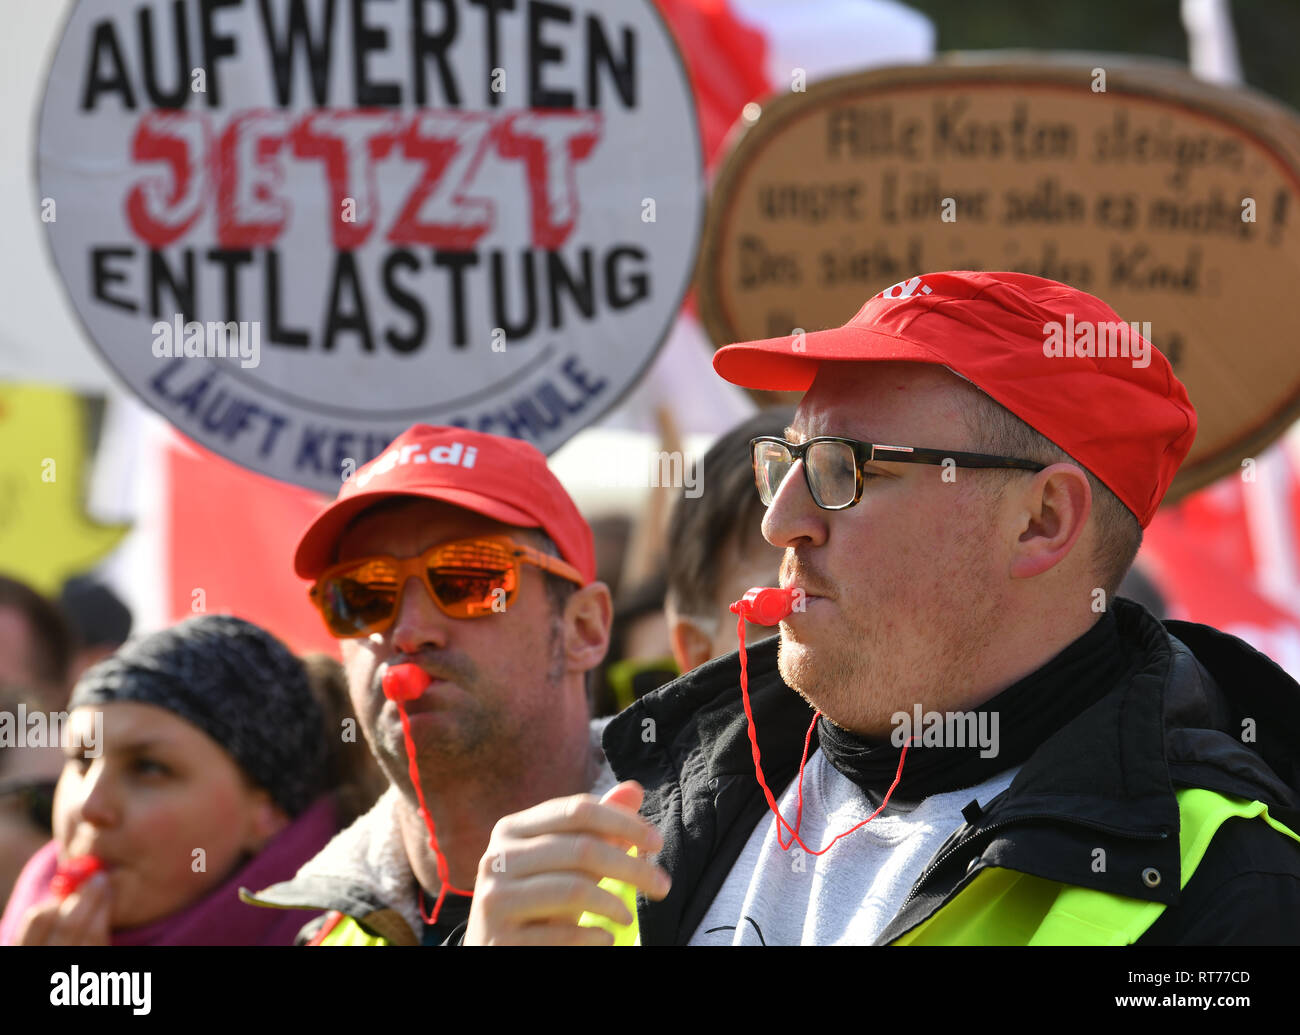 Potsdam, Germany. 28th Feb, 2019. Trade unionists demonstrate with whistles and posters before the start of the third round of collective bargaining in the public service of the states. After the warning strikes, a conclusion to this round of negotiations is expected this weekend. Credit: Bernd Settnik/dpa-Zentralbild/dpa/Alamy Live News - Stock Image